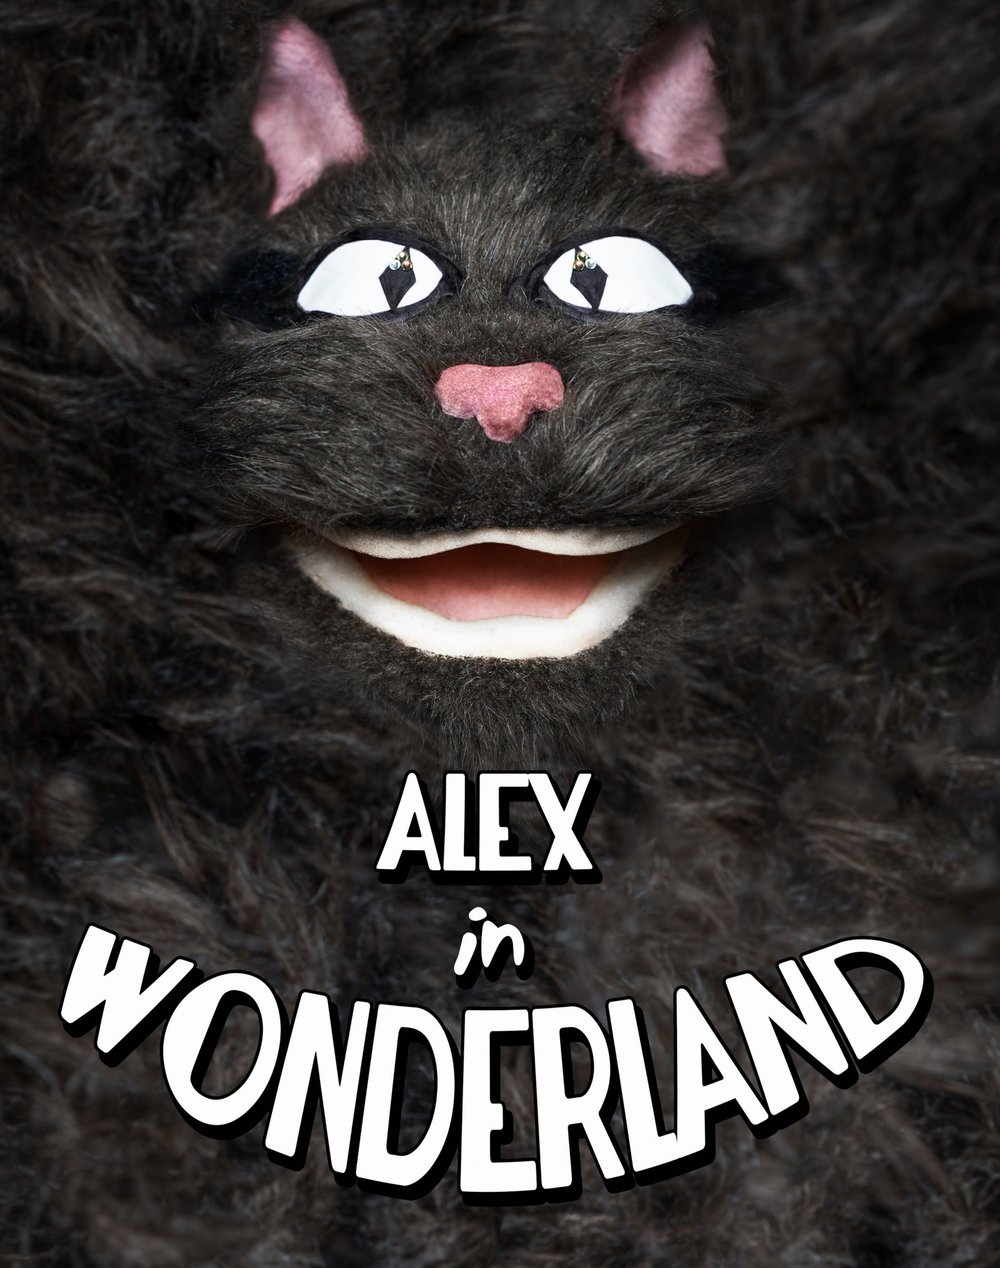 Alex in wonderland - Now playing until January 13 2019Alex escapes to Wonderland looking for adventure, attention and answers. What Alex finds is a frivolous world peopled with creatures of nonsense. Can Alex find a voice and place in the real world while journeying through a land of madness?This beautifully crafted play features the well-known absurdity of Lewis Carroll's classic interpreted through delightful costumes, elaborate shadow play and whimsical puppets of various styles.Saturdays & Sundays @ 2pmNovember 10 - January 13:Wednesdays - Fridays @ 2pmDecember 26 - January 4Recommended for ages 5 and up: *this is a sit-quietly show that's an hour long, and includes loud voices, moments of darkness and sudden surprises*